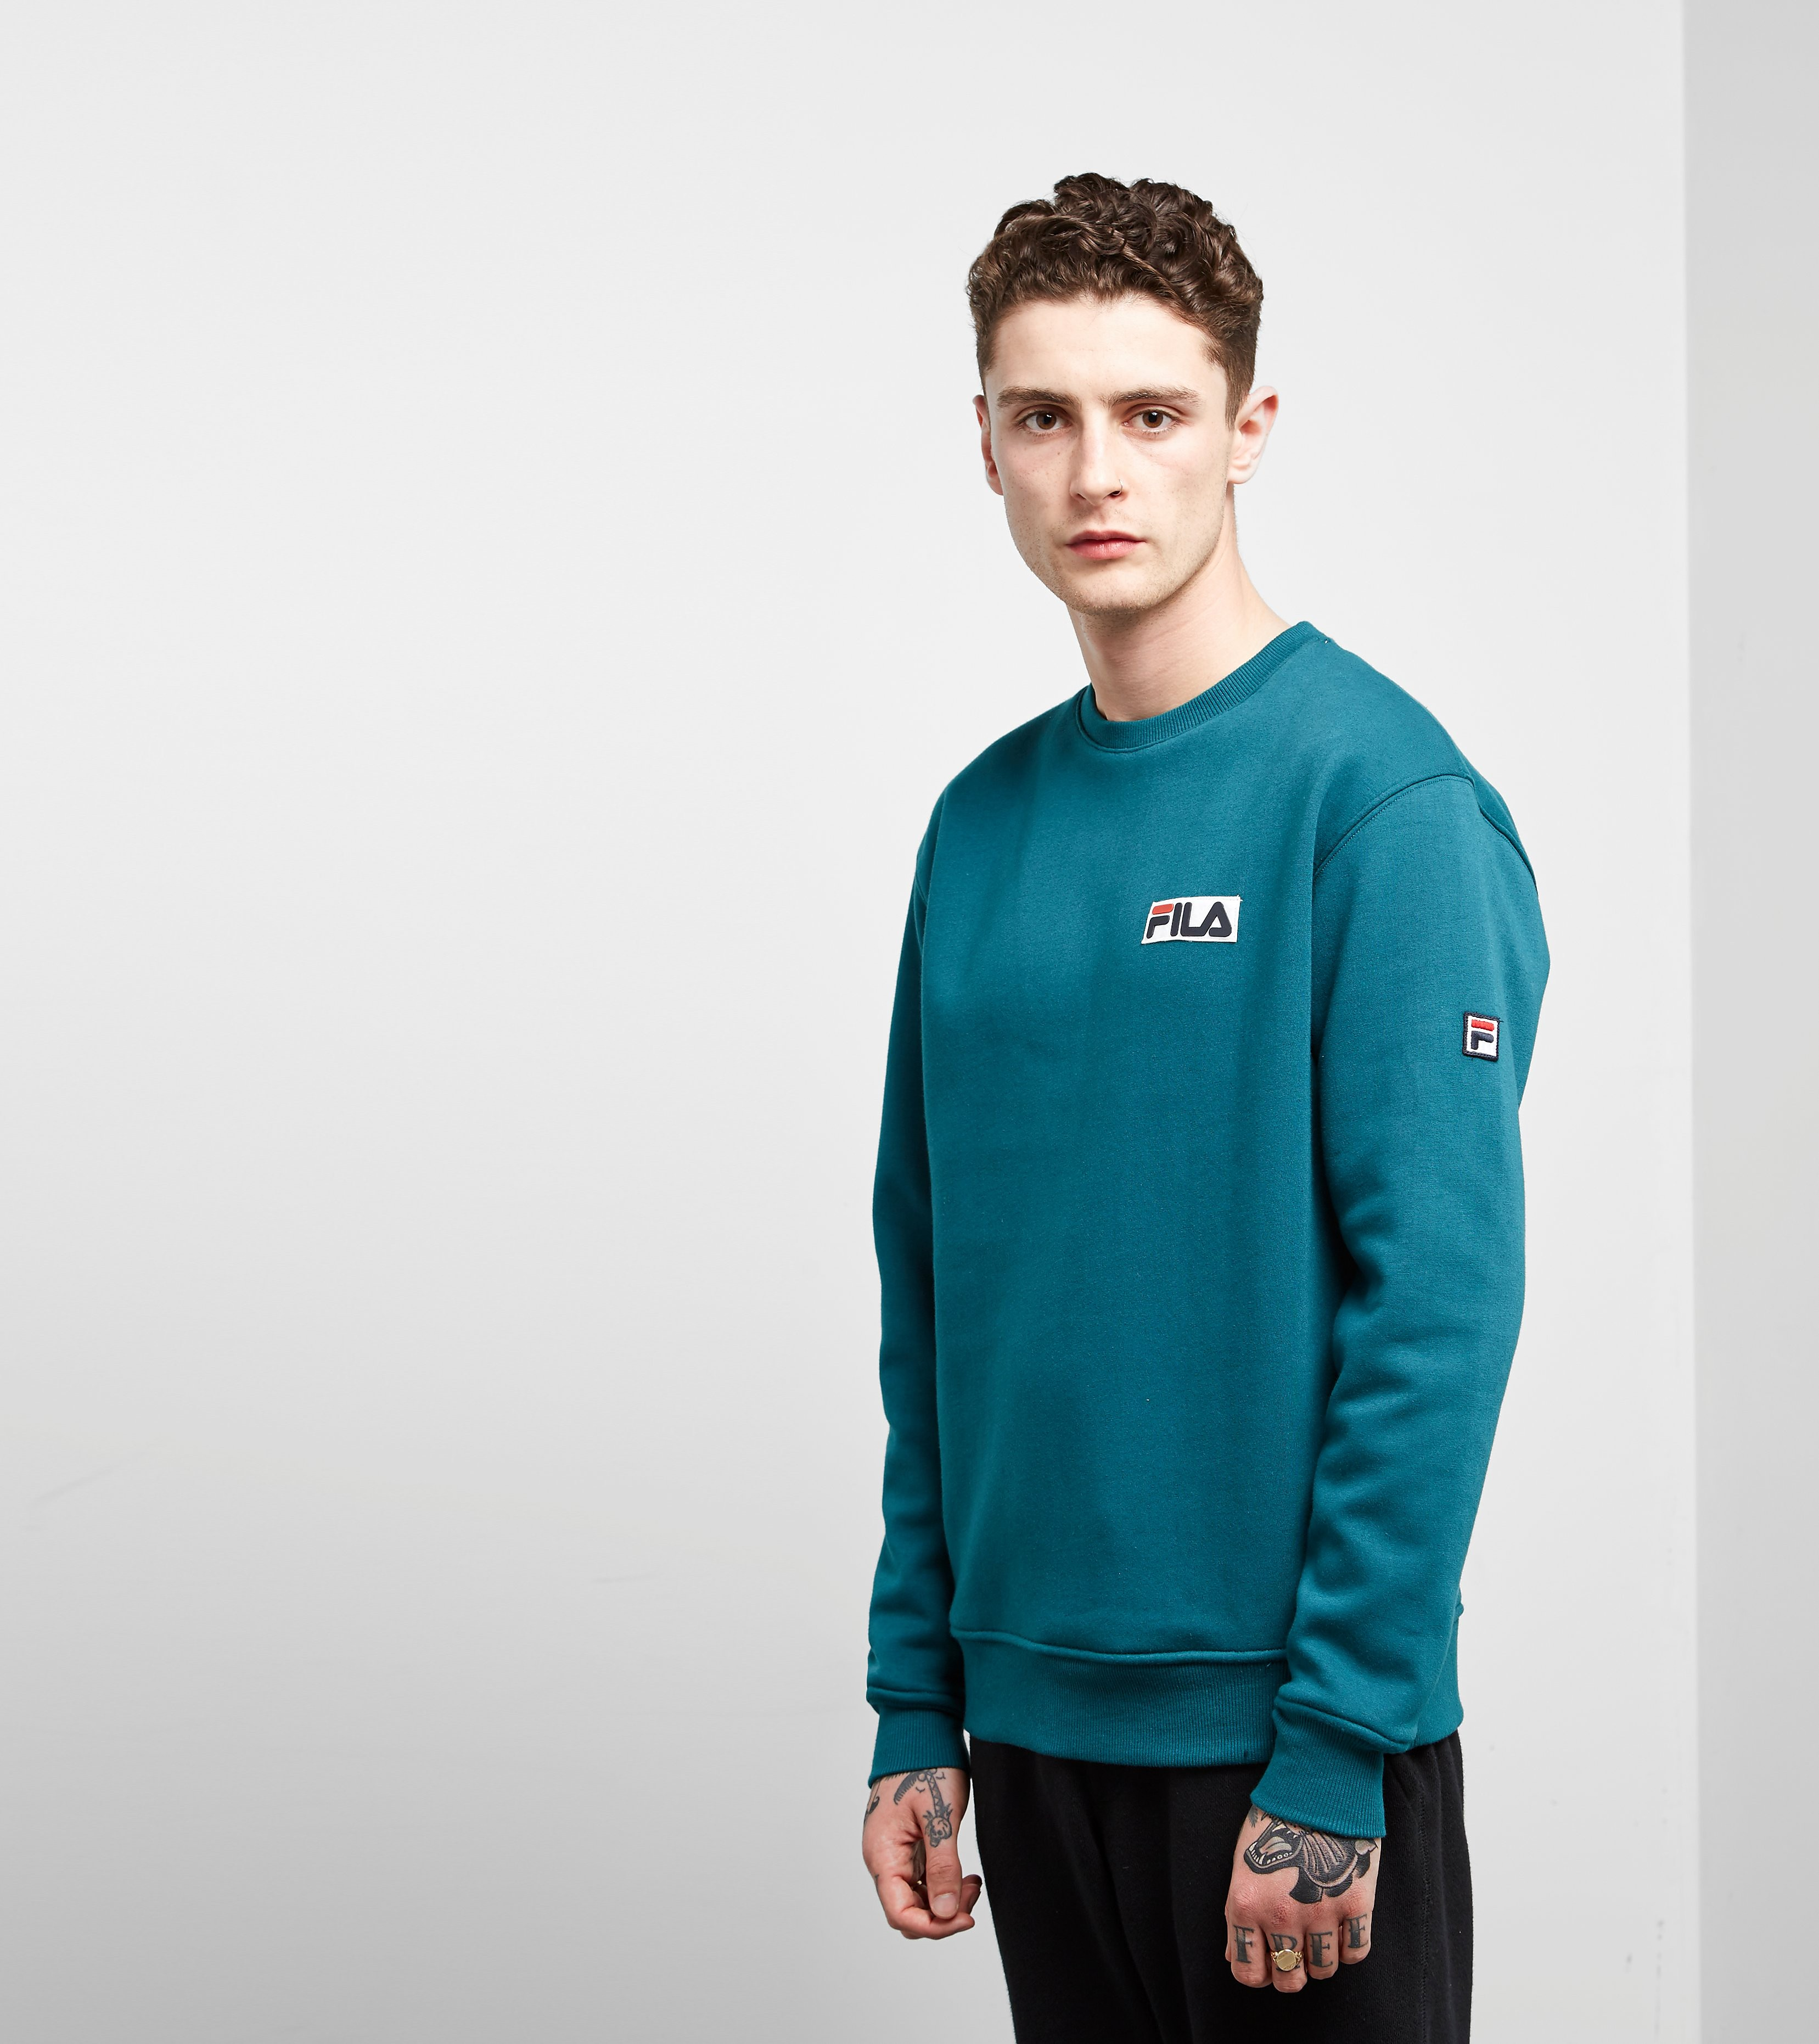 Fila Mast Crew Jumper - size? Exclusive